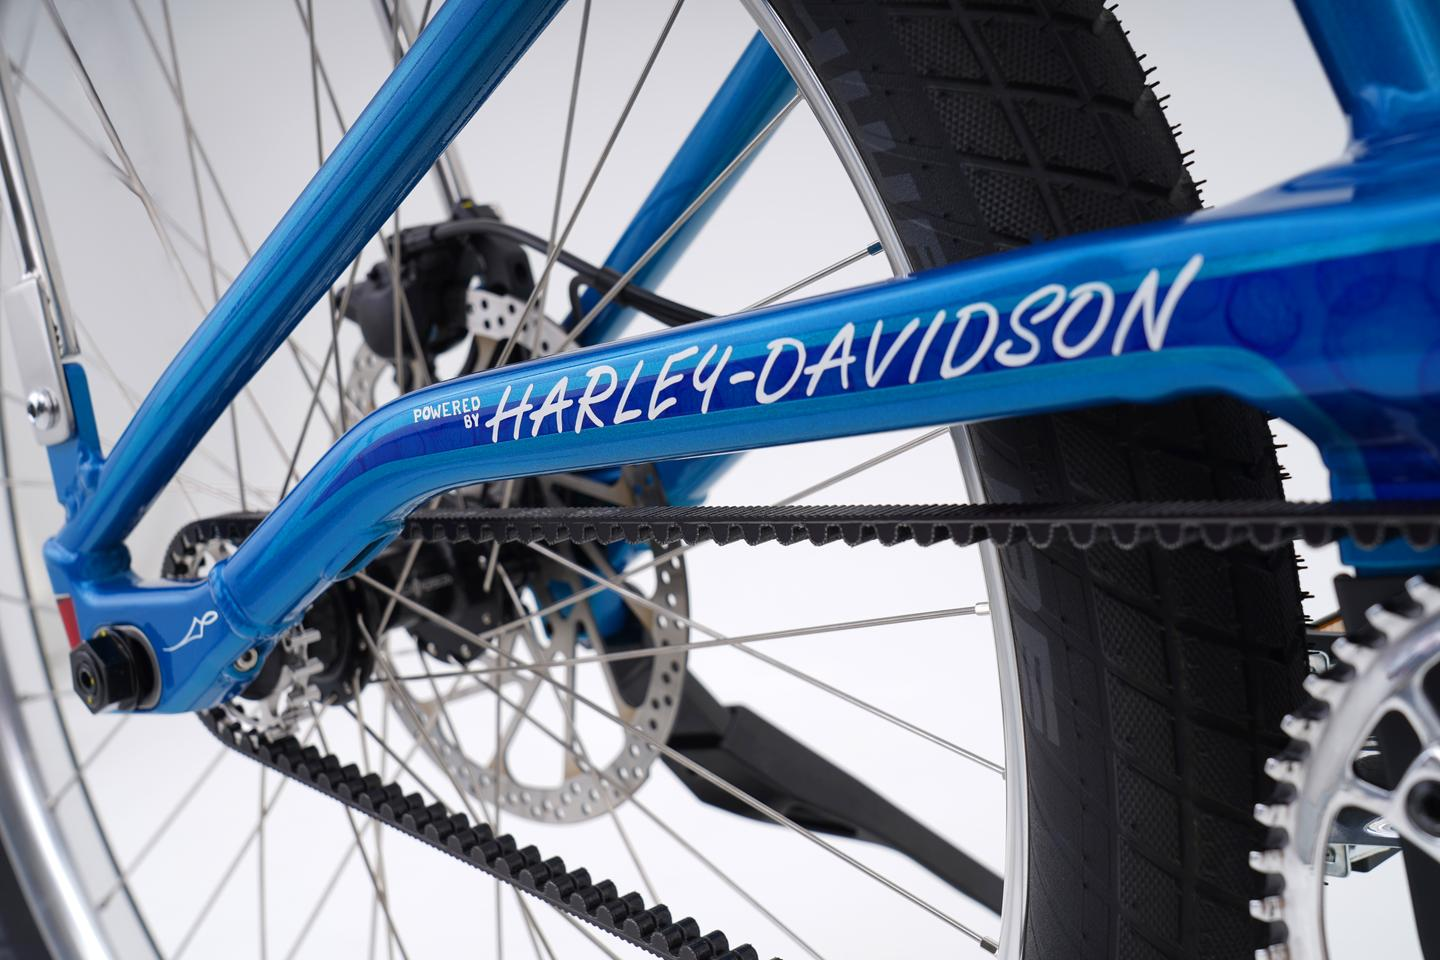 """The MOSH/CHOPPER features a Gates Carbon Drive belt, TRP hydraulic brakes, and wears the Harley-Davidson name in """"single-stroke hand lettering"""""""